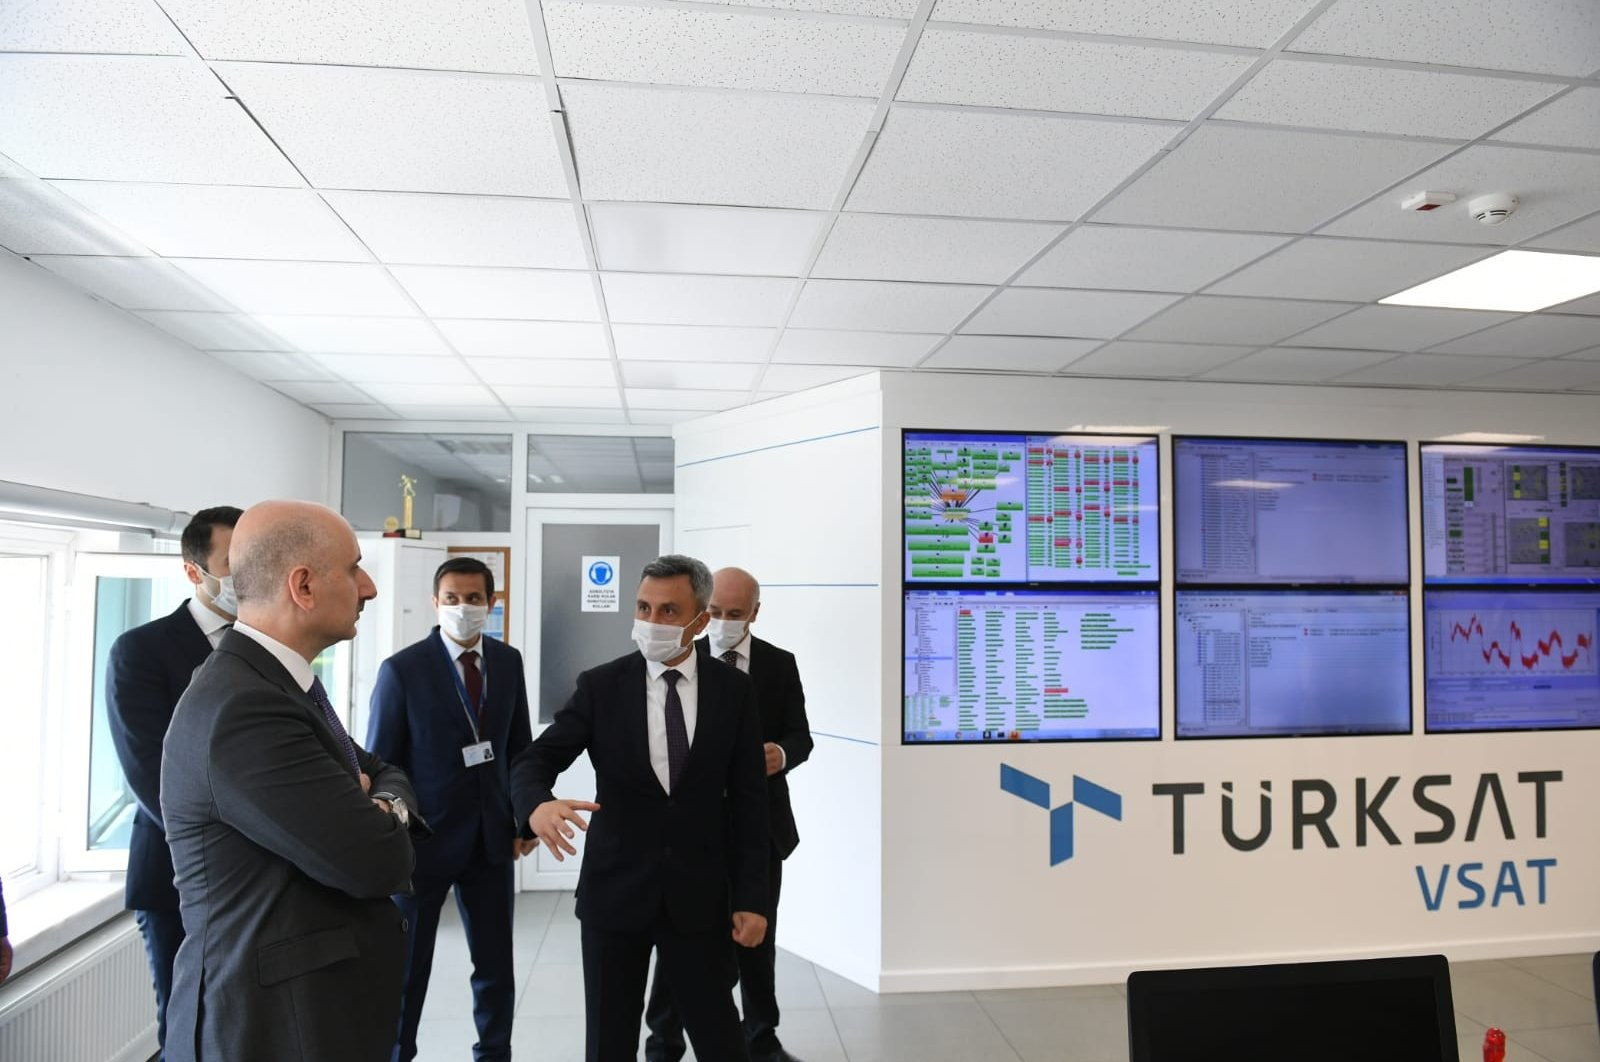 Transportaion and Infrastructure Minister Adil Karaismailoğlu during his visit to Türksat compound in Gölbaşı, Ankara, June 3, 2020. (IHA Photo)